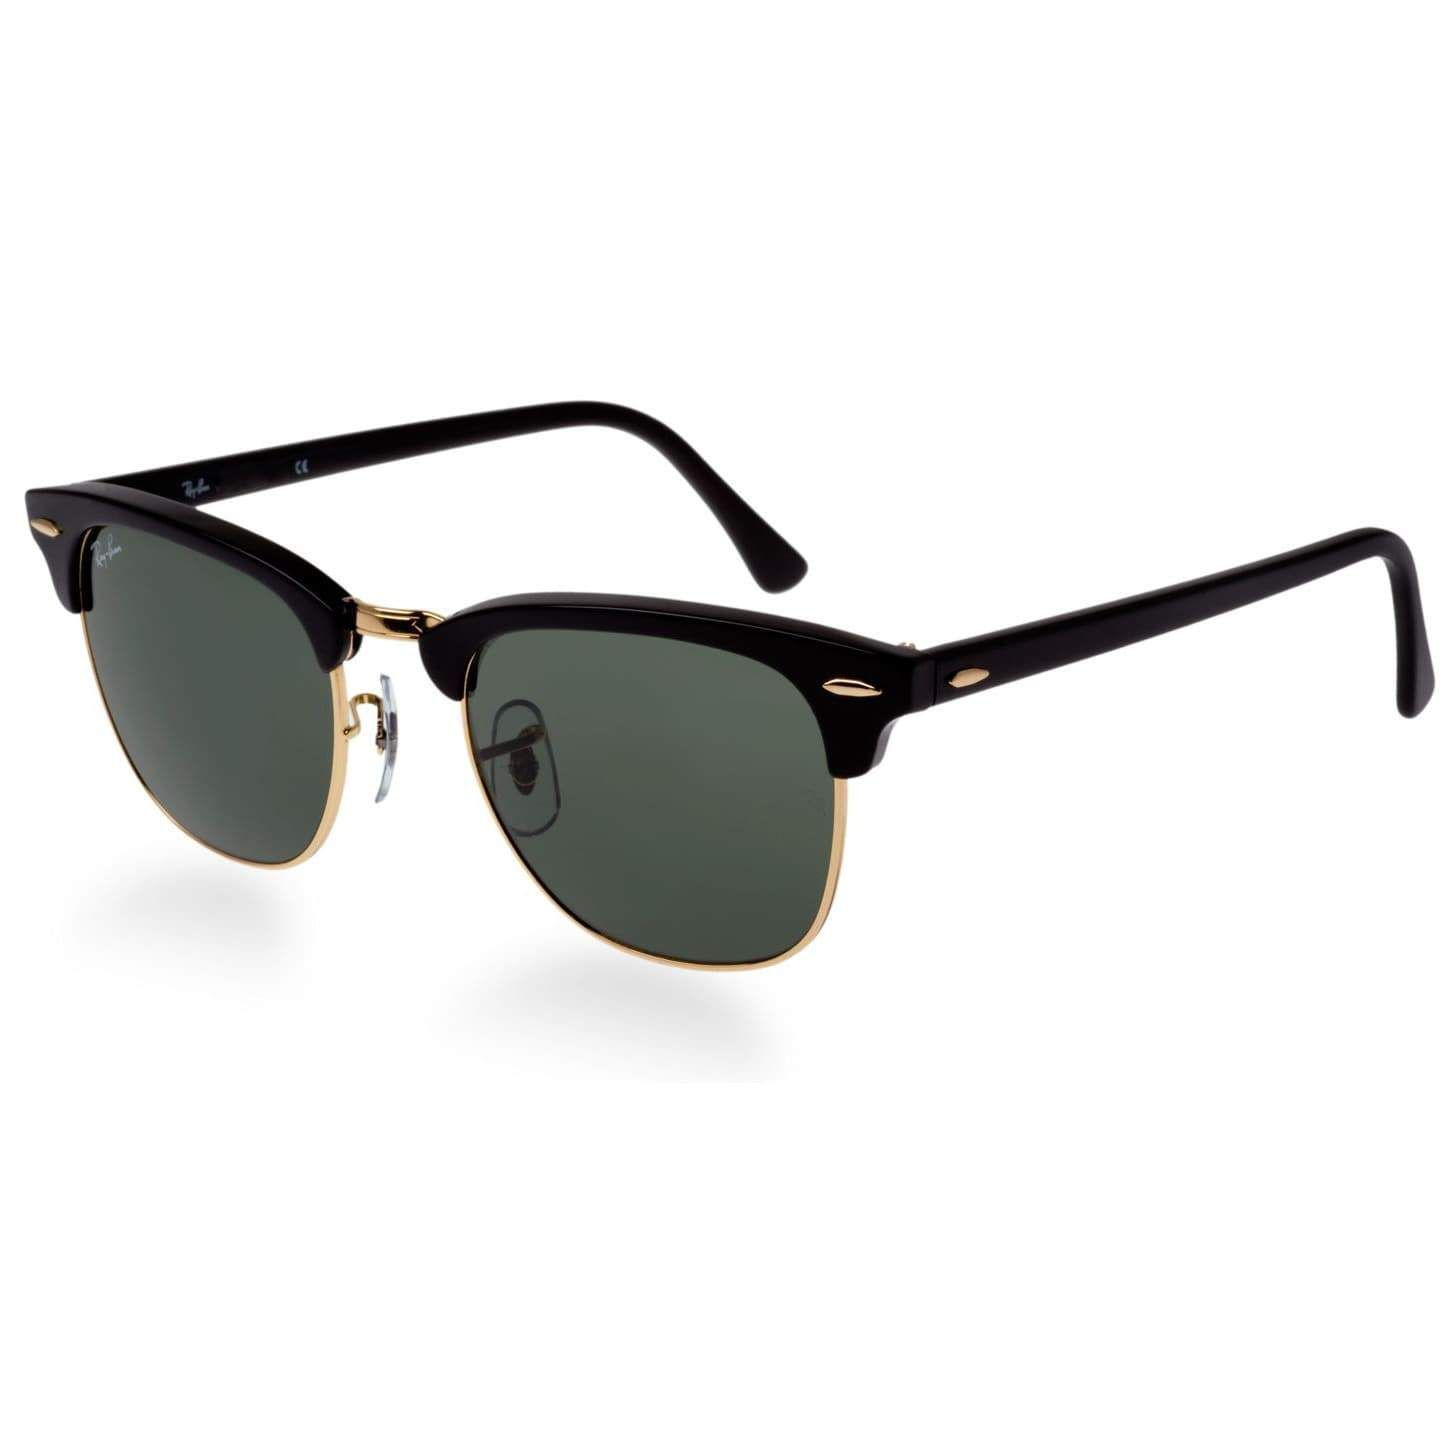 34f94c2b1d7 ... real ray ban clubmaster rb3016 unisex black frame green classic  sunglasses ce381 fb909